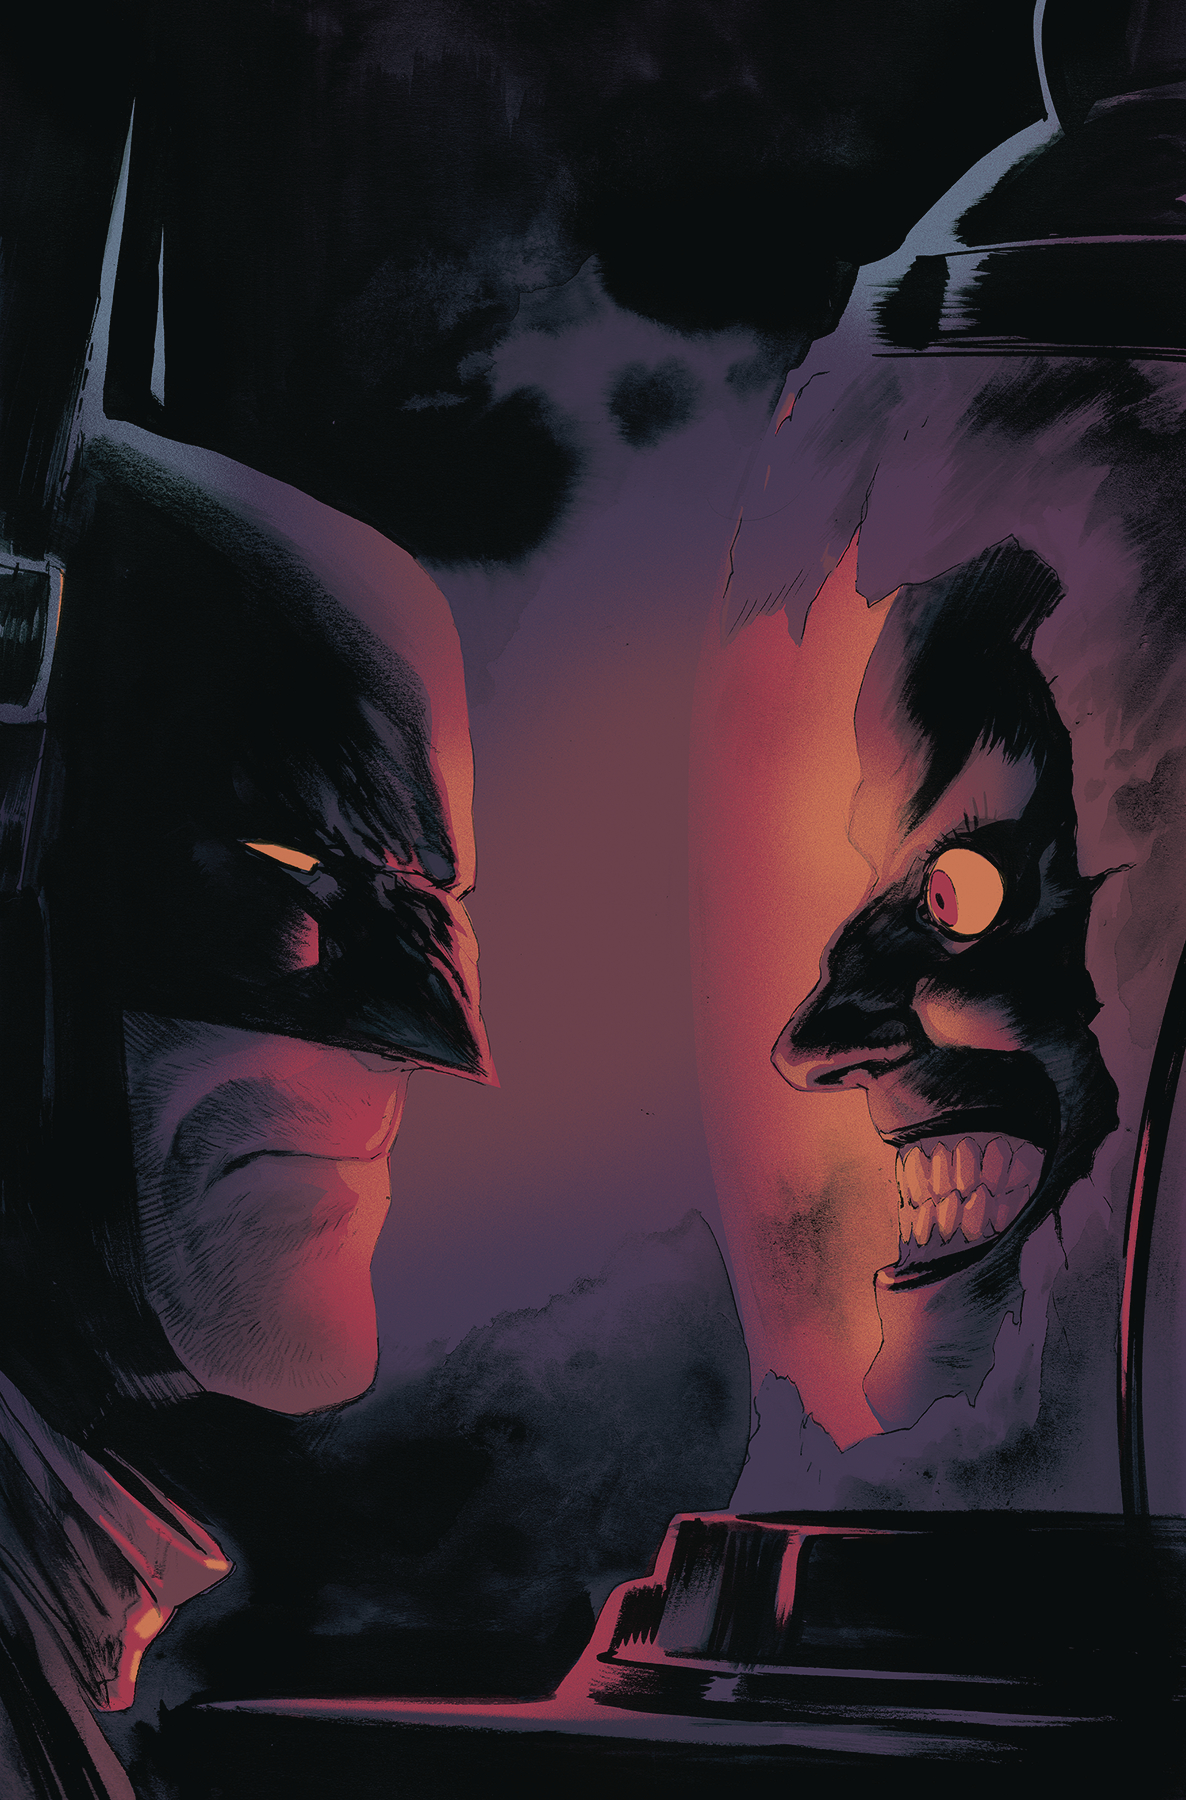 LATE: Batman: The Last Knight On Earth #3 Slips a Month, to December 18th